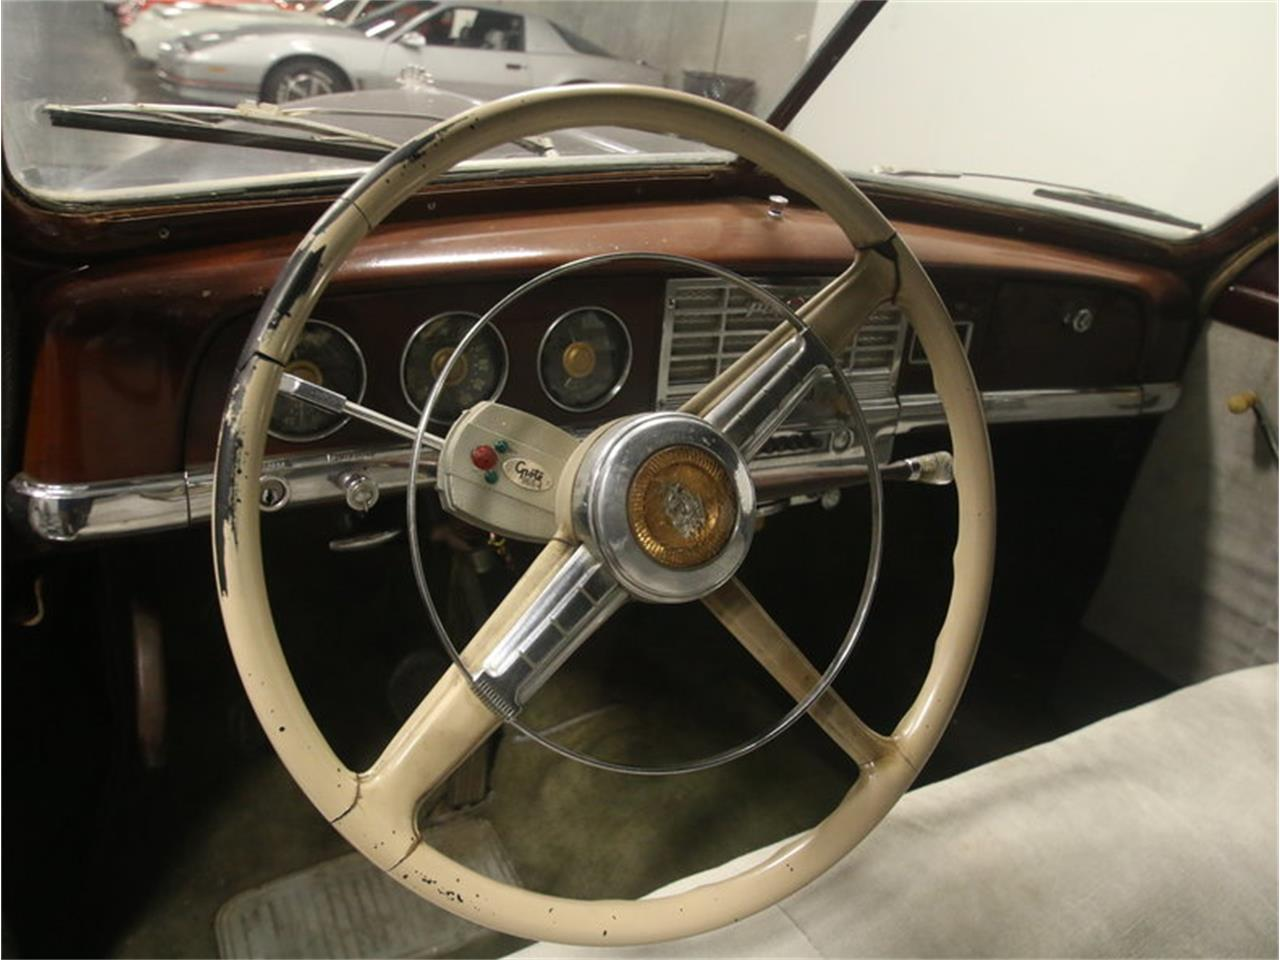 Large Picture of Classic '49 Plymouth Special Deluxe located in Lithia Springs Georgia Offered by Streetside Classics - Atlanta - L551